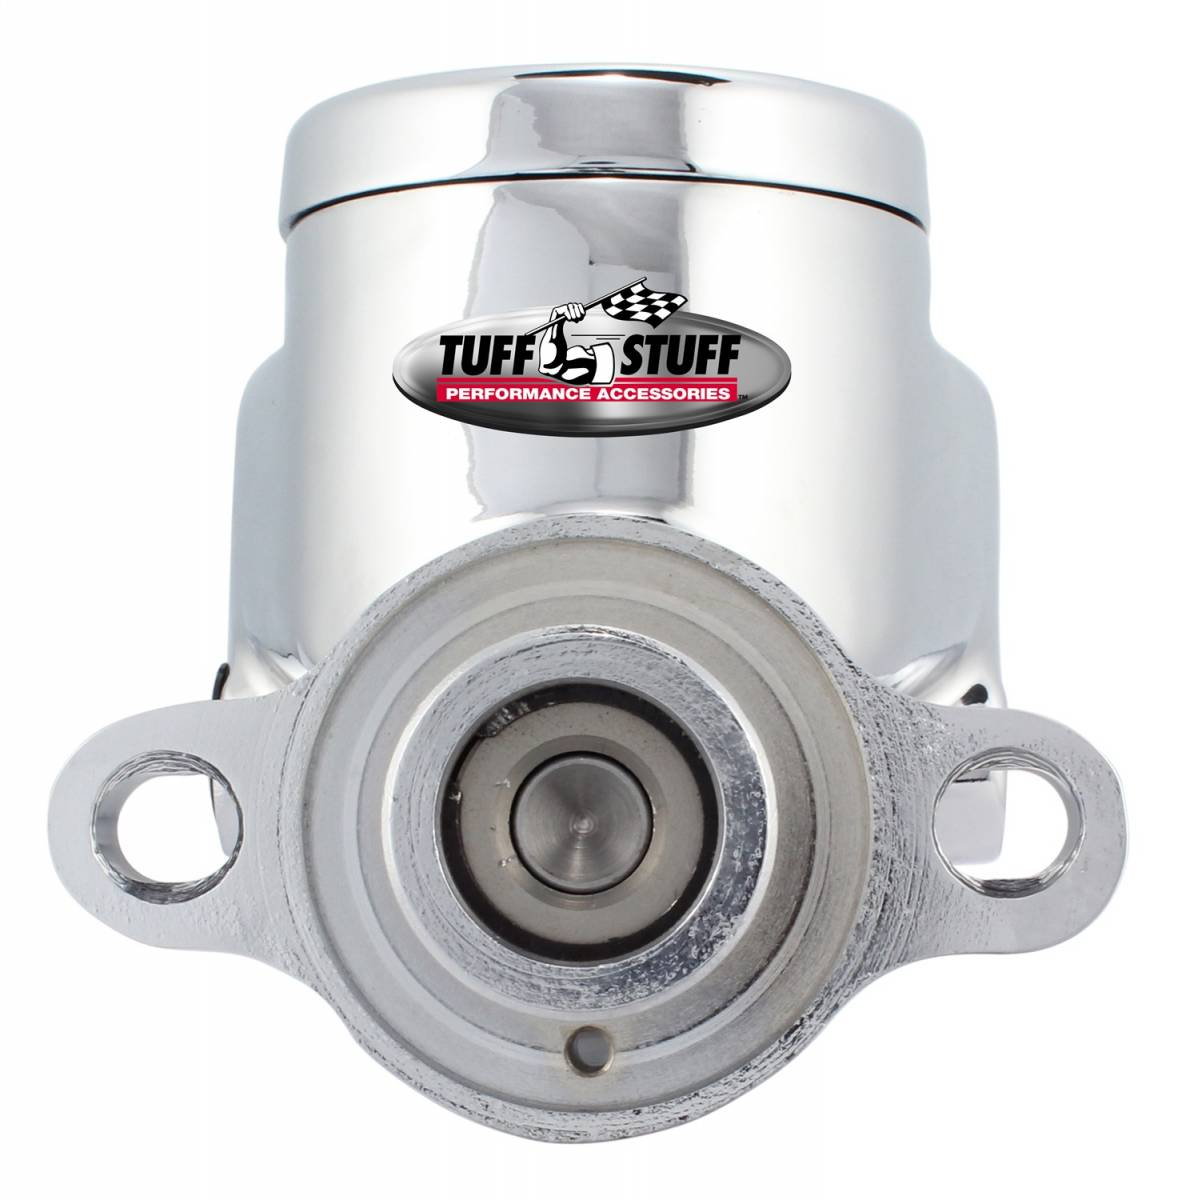 Tuff Stuff Performance - Brake Master Cylinder Dual Reservoir Aluminum Smoothie 1 in. Bore Dual 3/8 in. Ports On Both Sides Shallow Hole Chrome Fits Hot Rods/Customs/Muscle Cars 2025NC